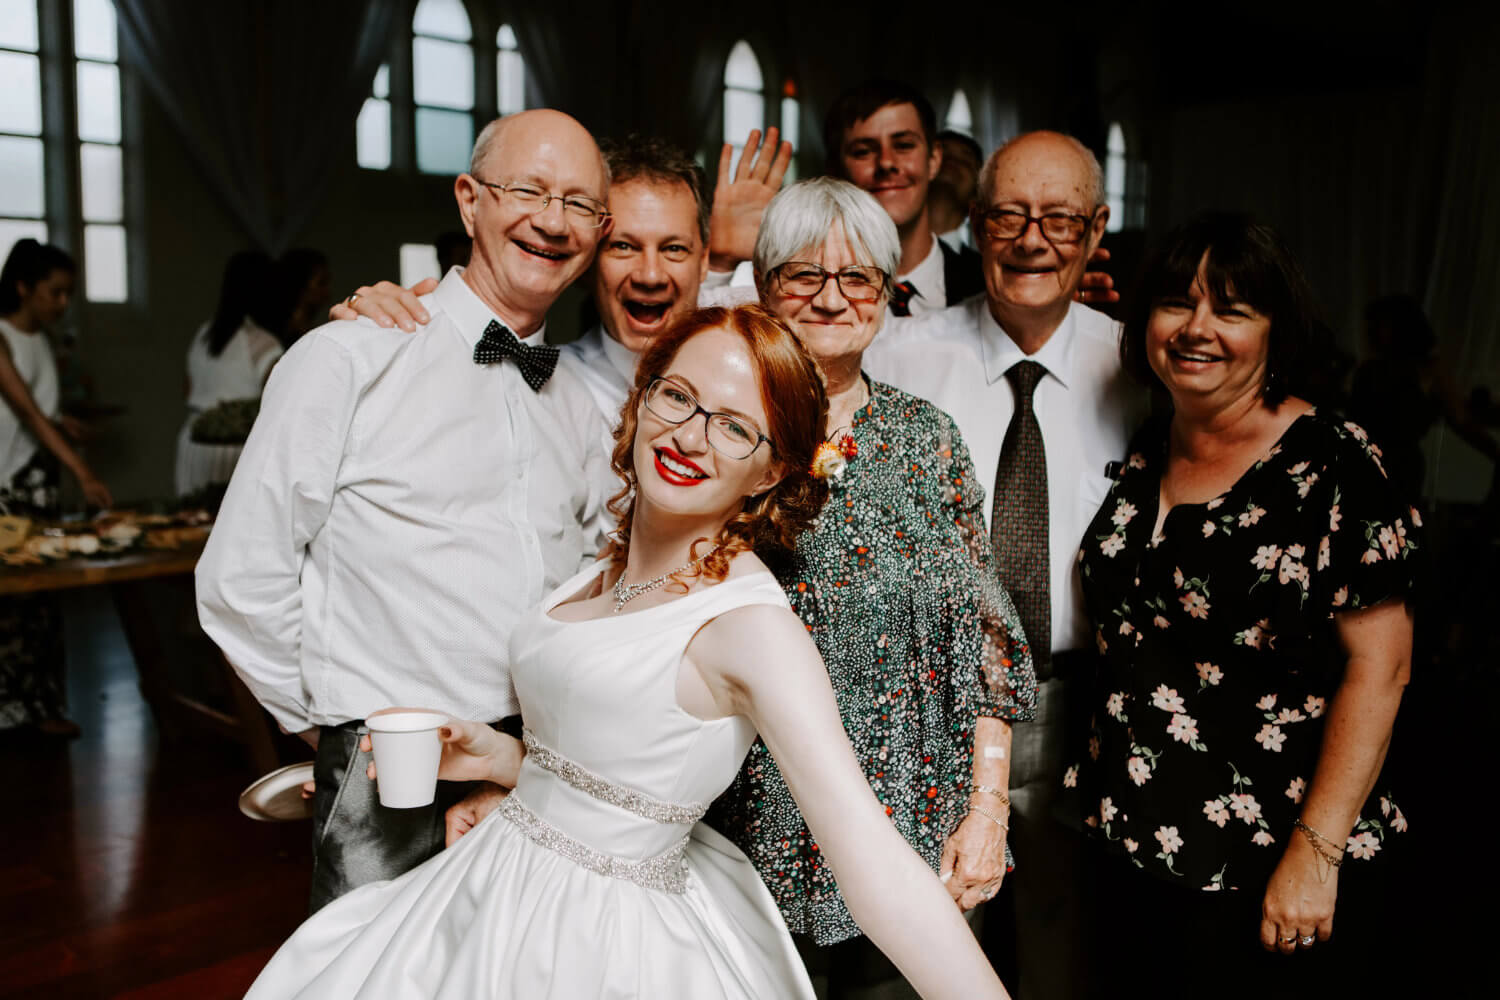 How to Make Family-Photos Easier at Your Wedding Best Wedding Day Tips and Tricks 4